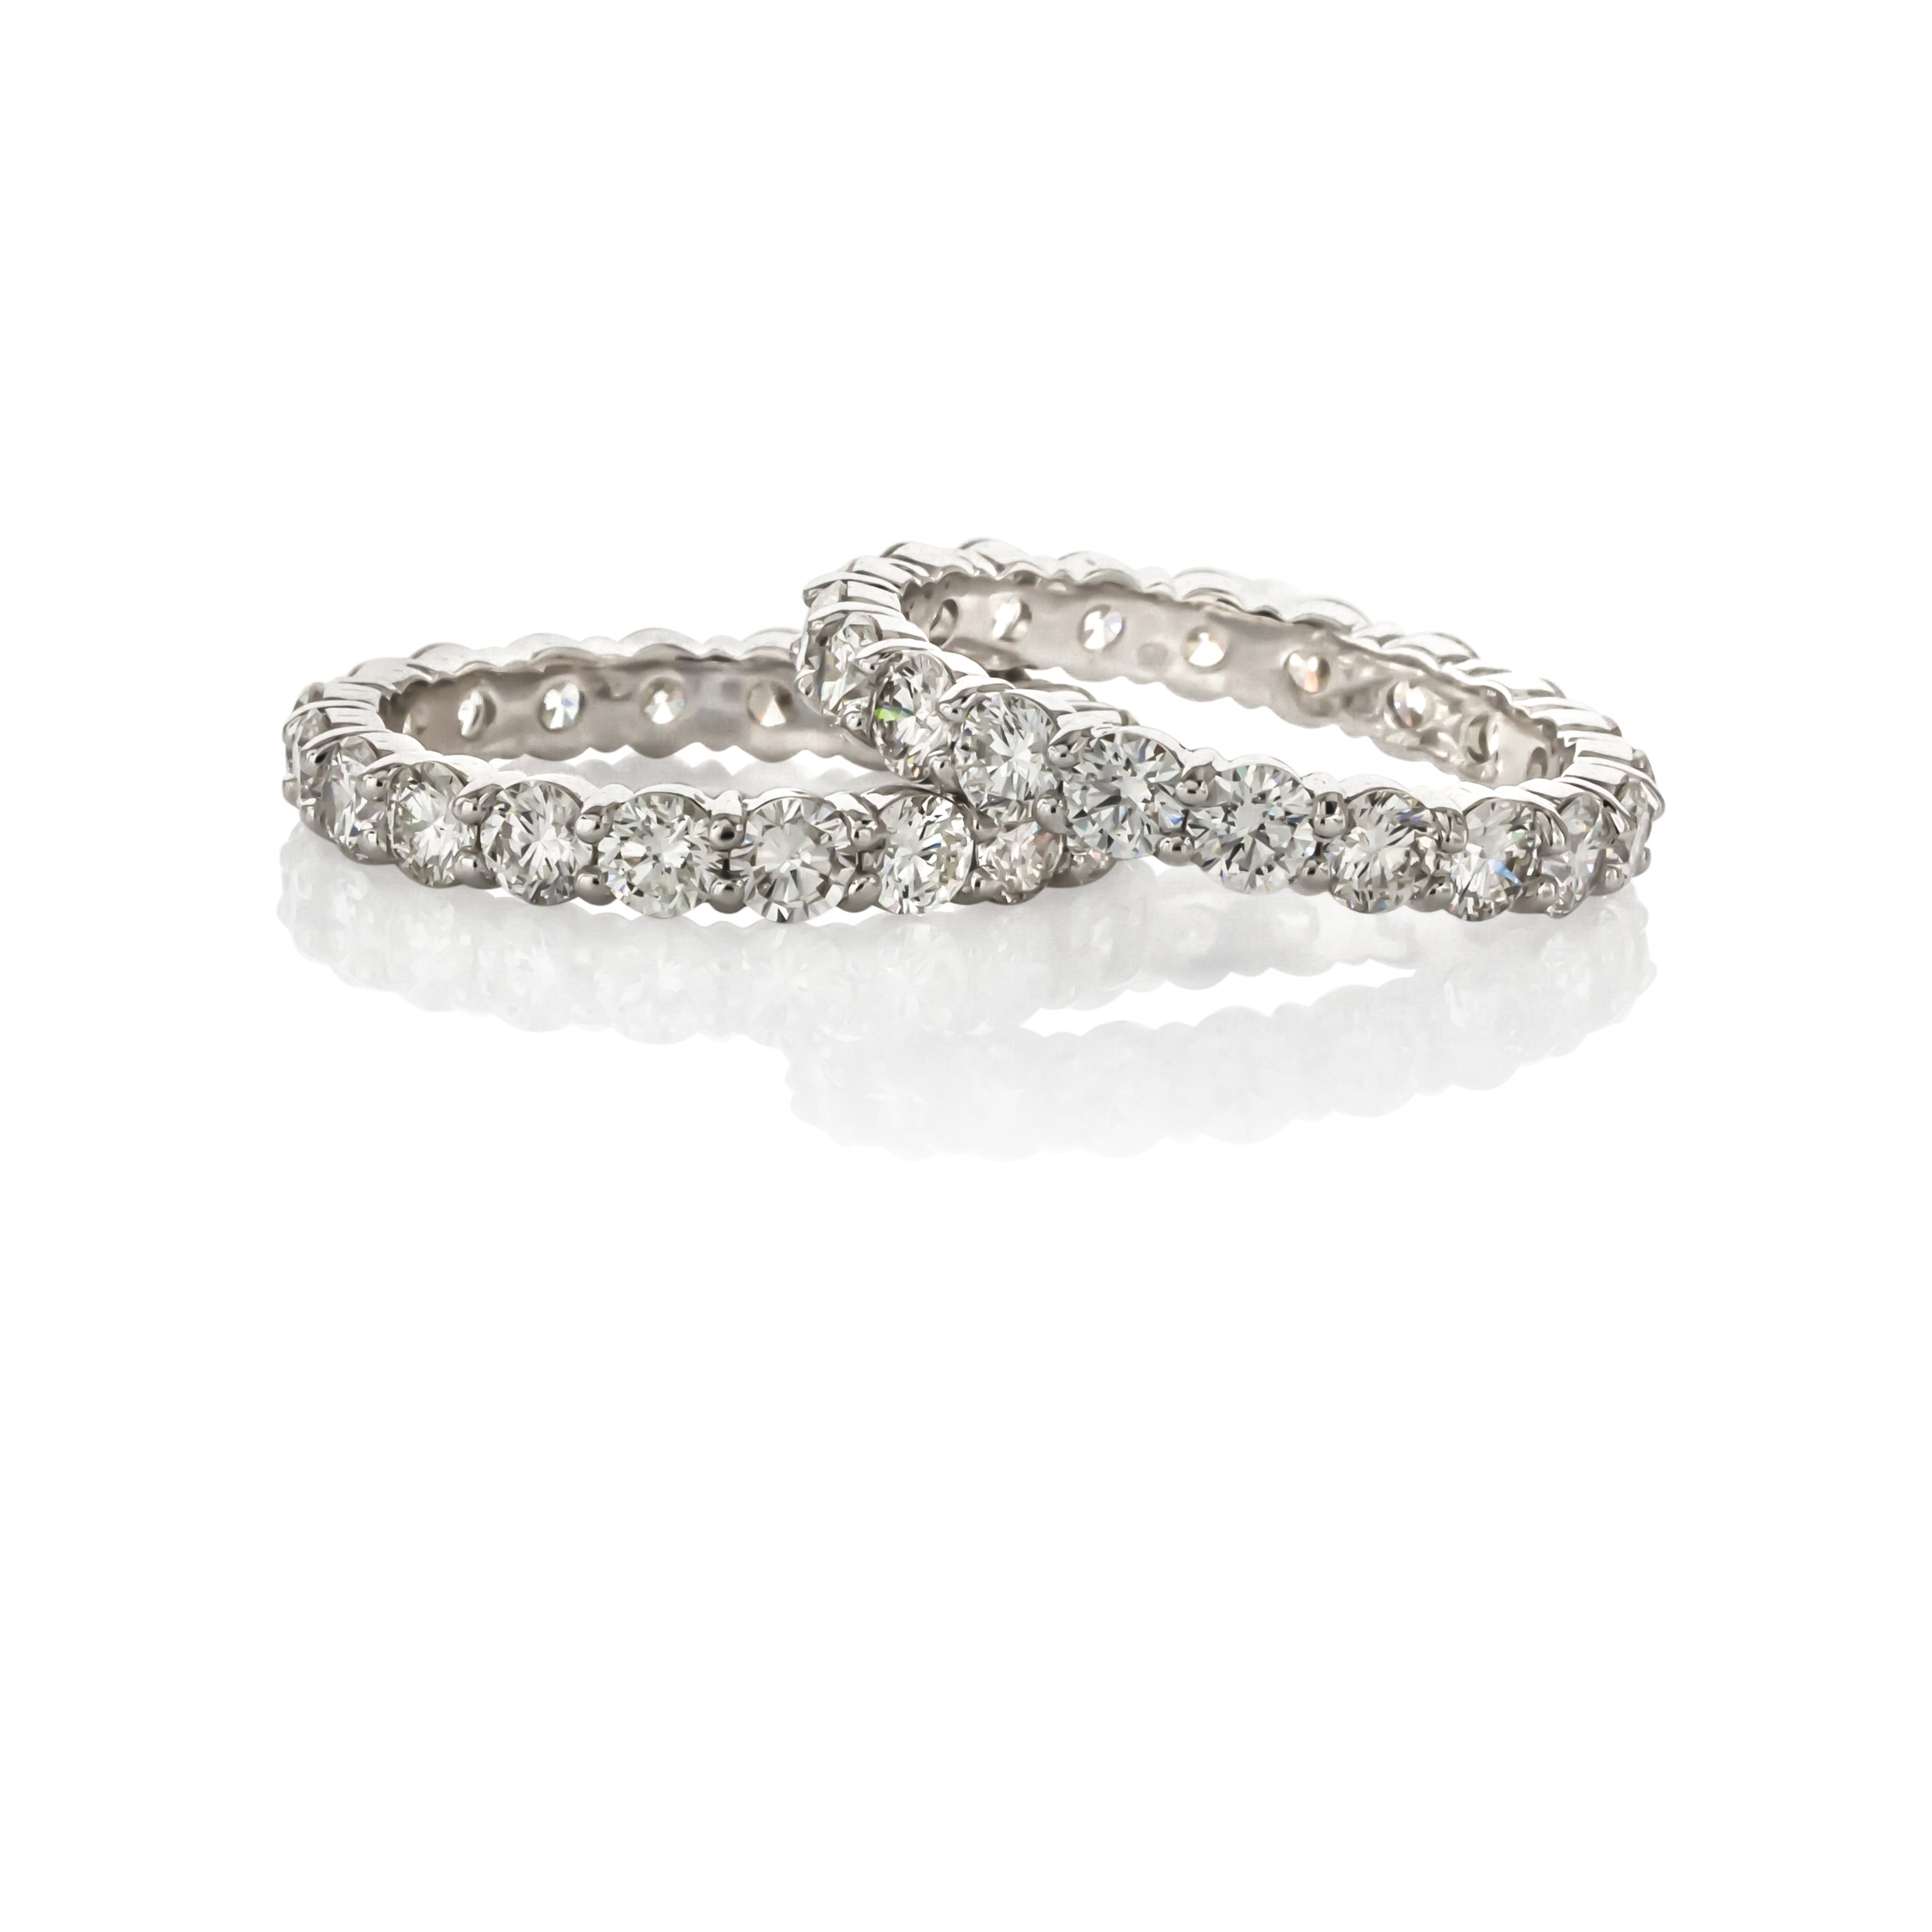 CUSTOM SHARED PRONG DIAMOND ETERNITY BANDS